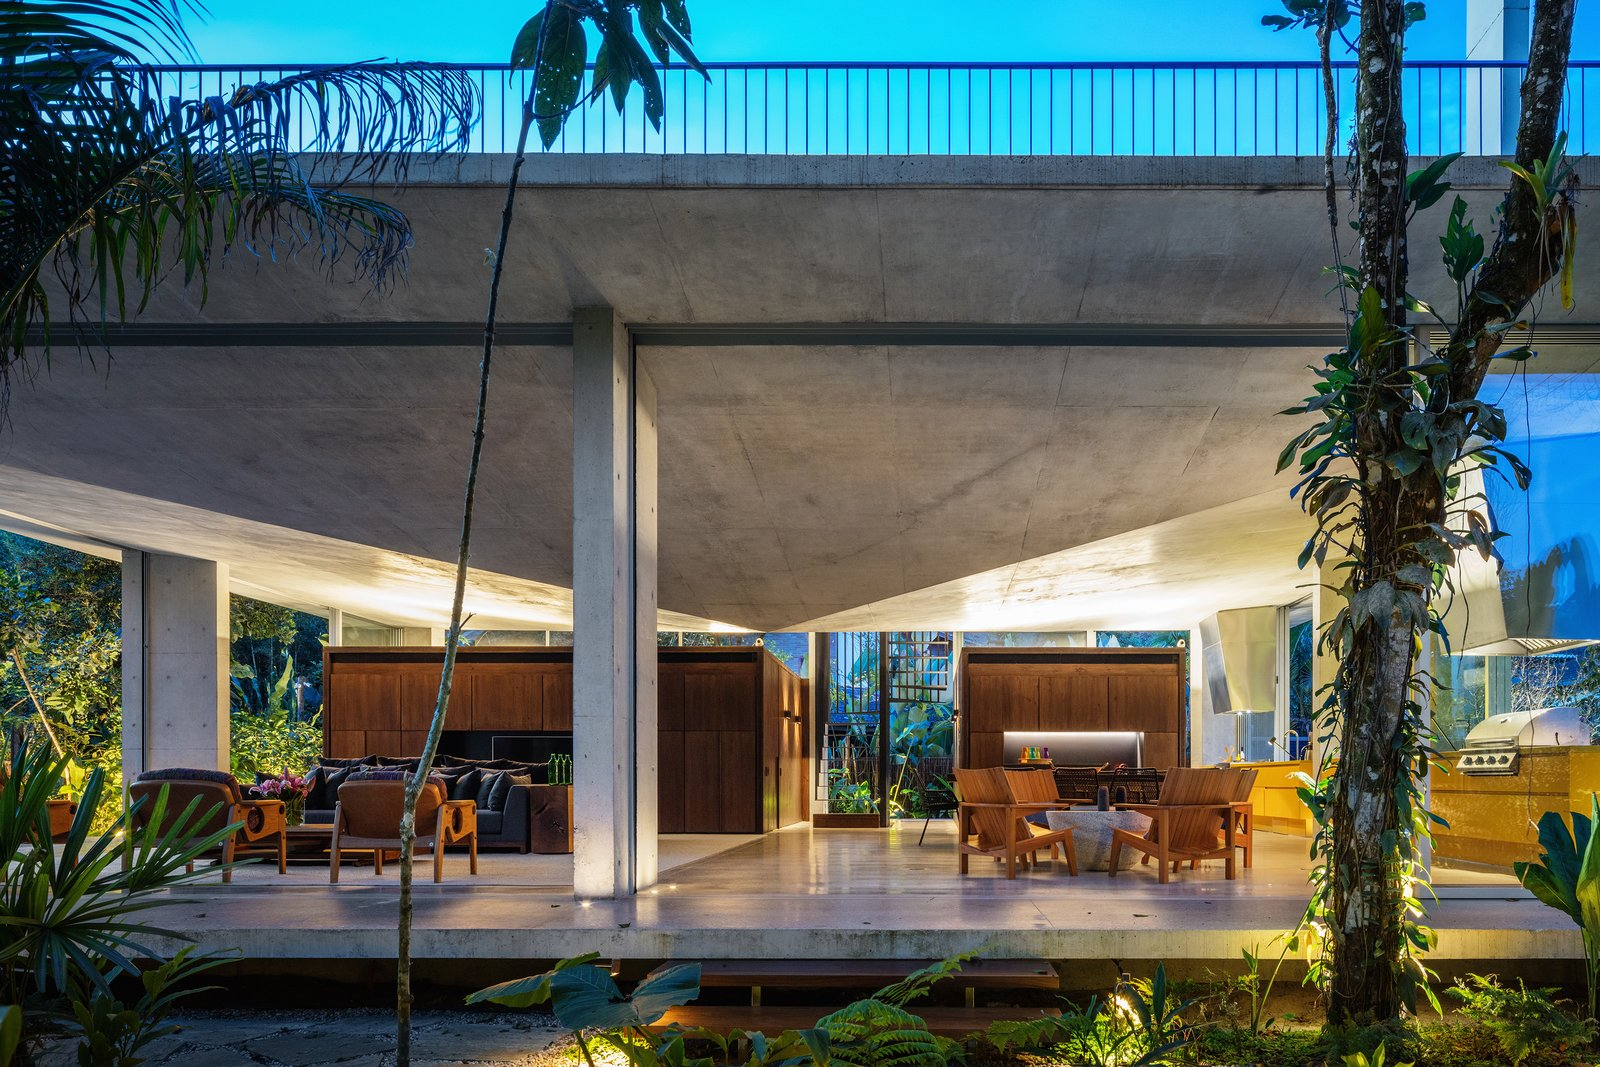 A Concrete Home In Brazil Lets The Owners Practically Live